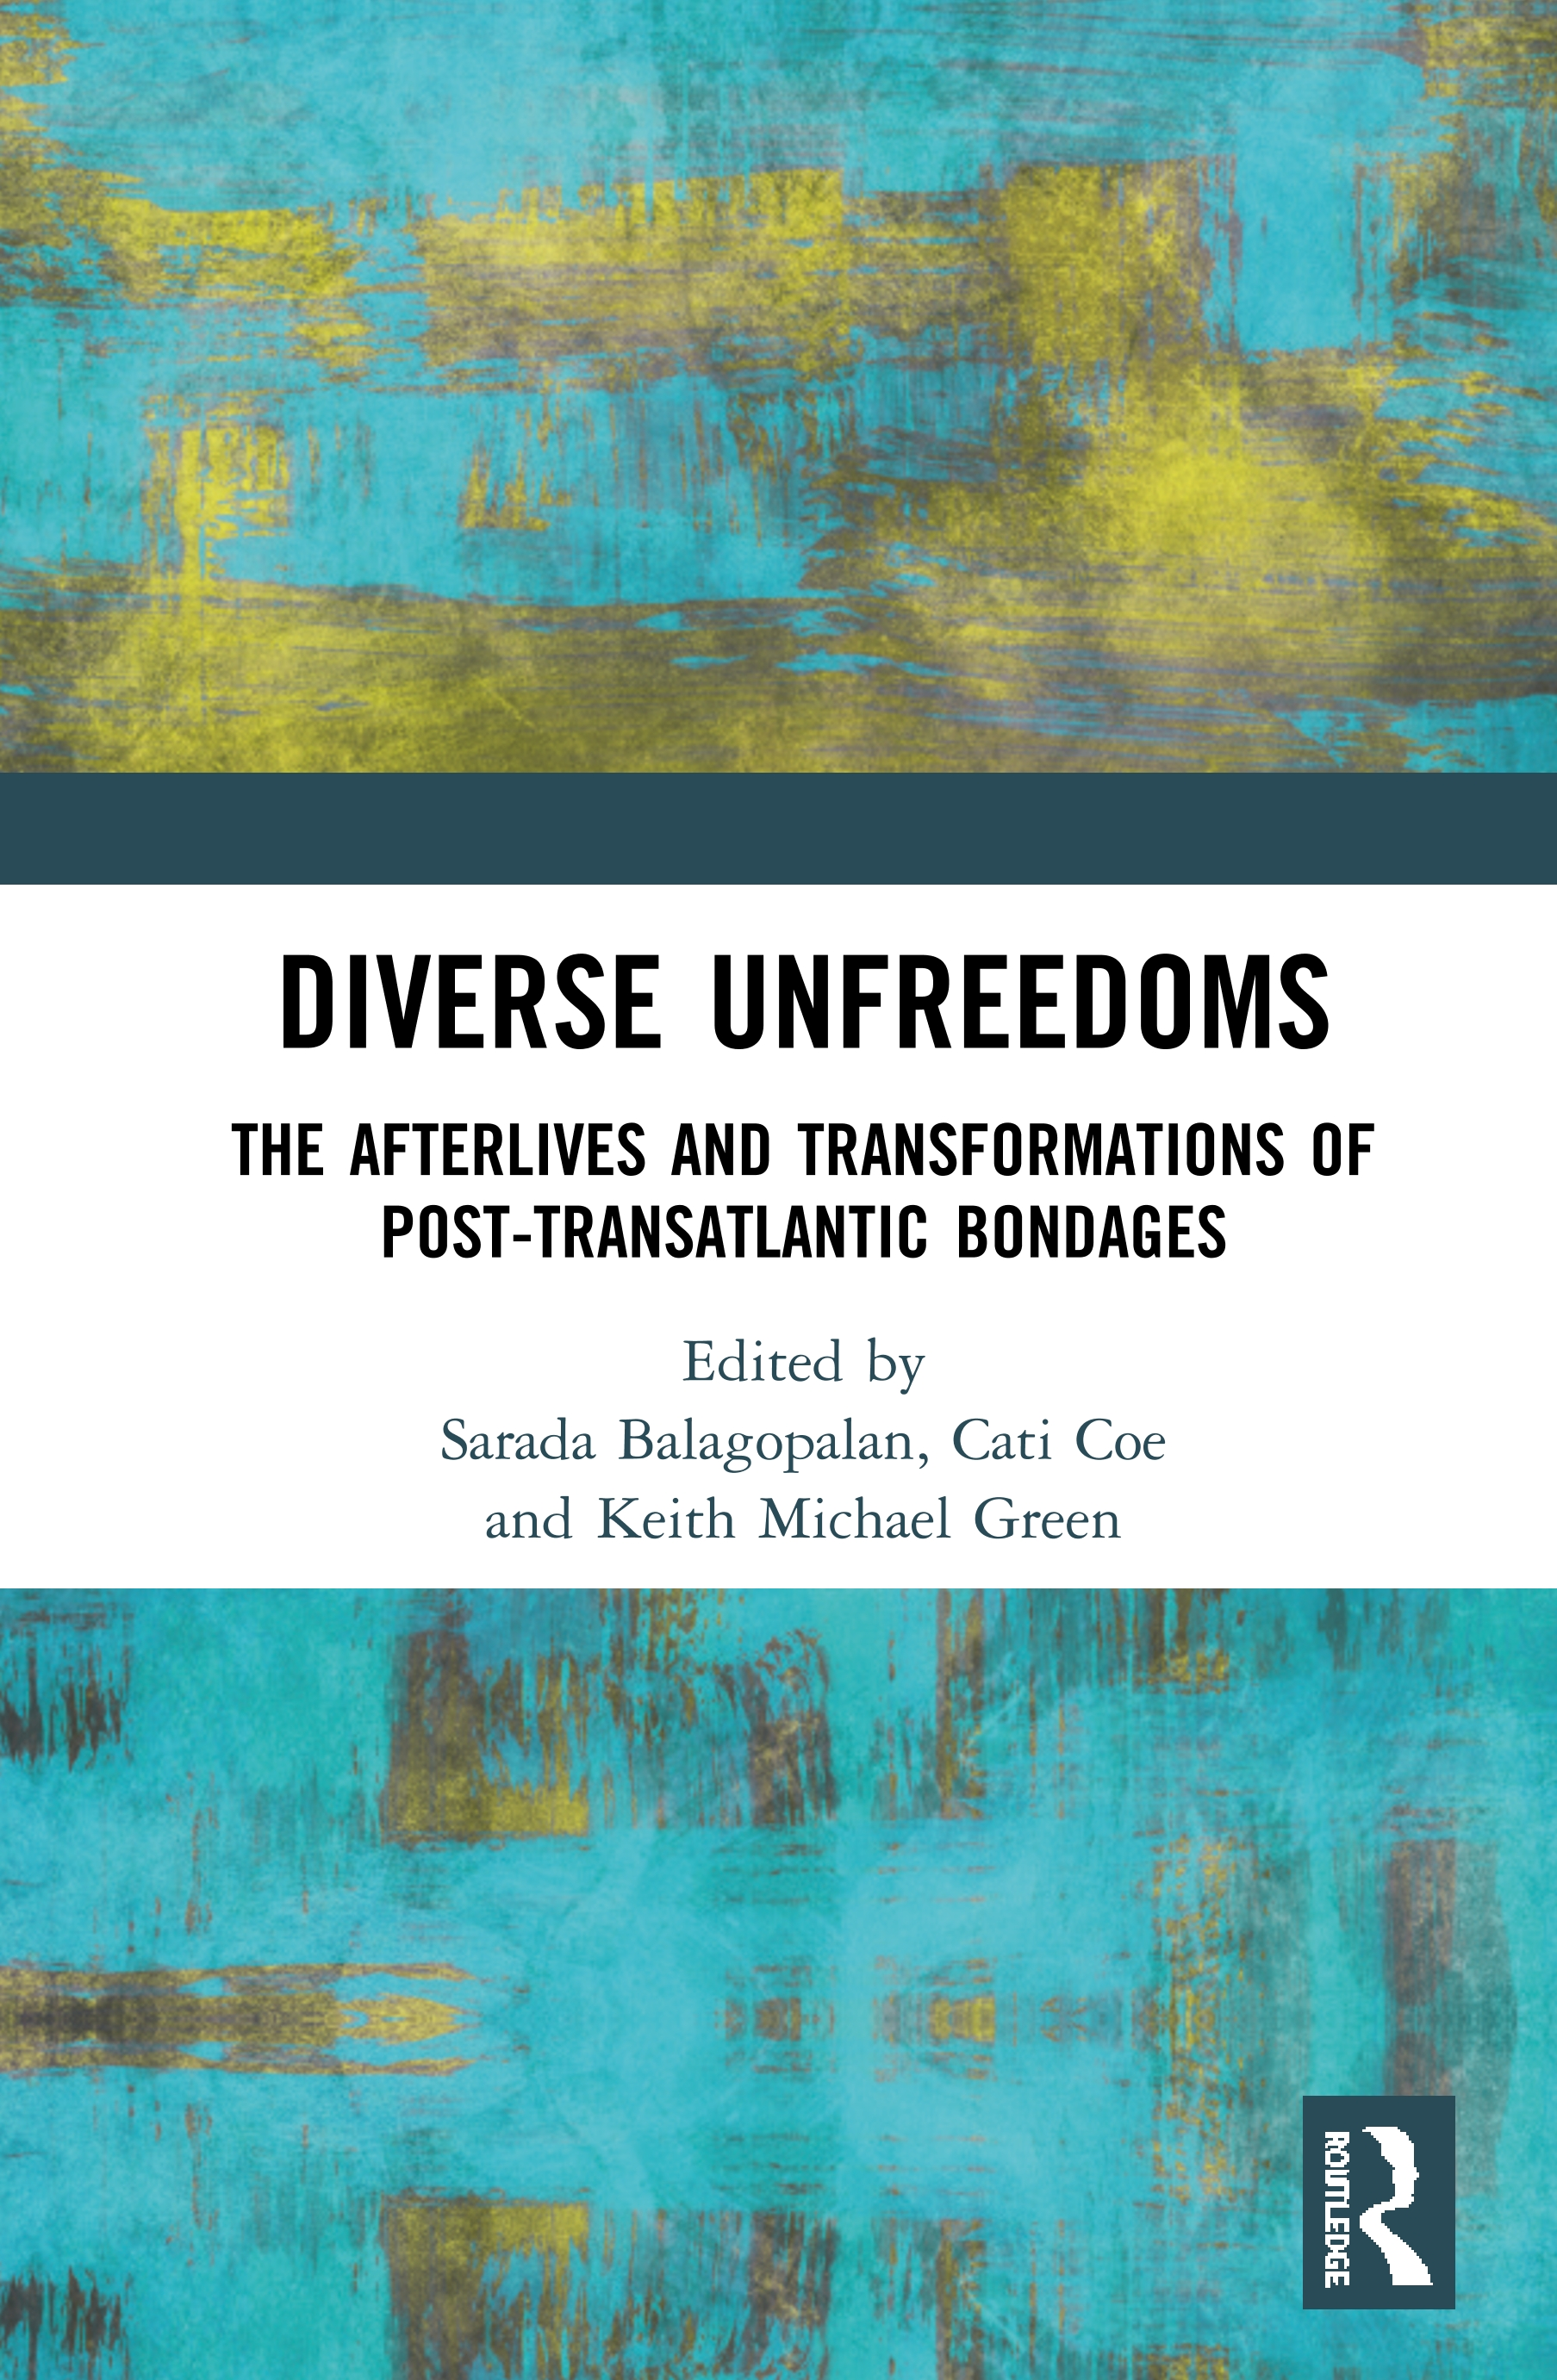 Diverse Unfreedoms: The Afterlives and Transformations of Post-Transatlantic Bondages book cover